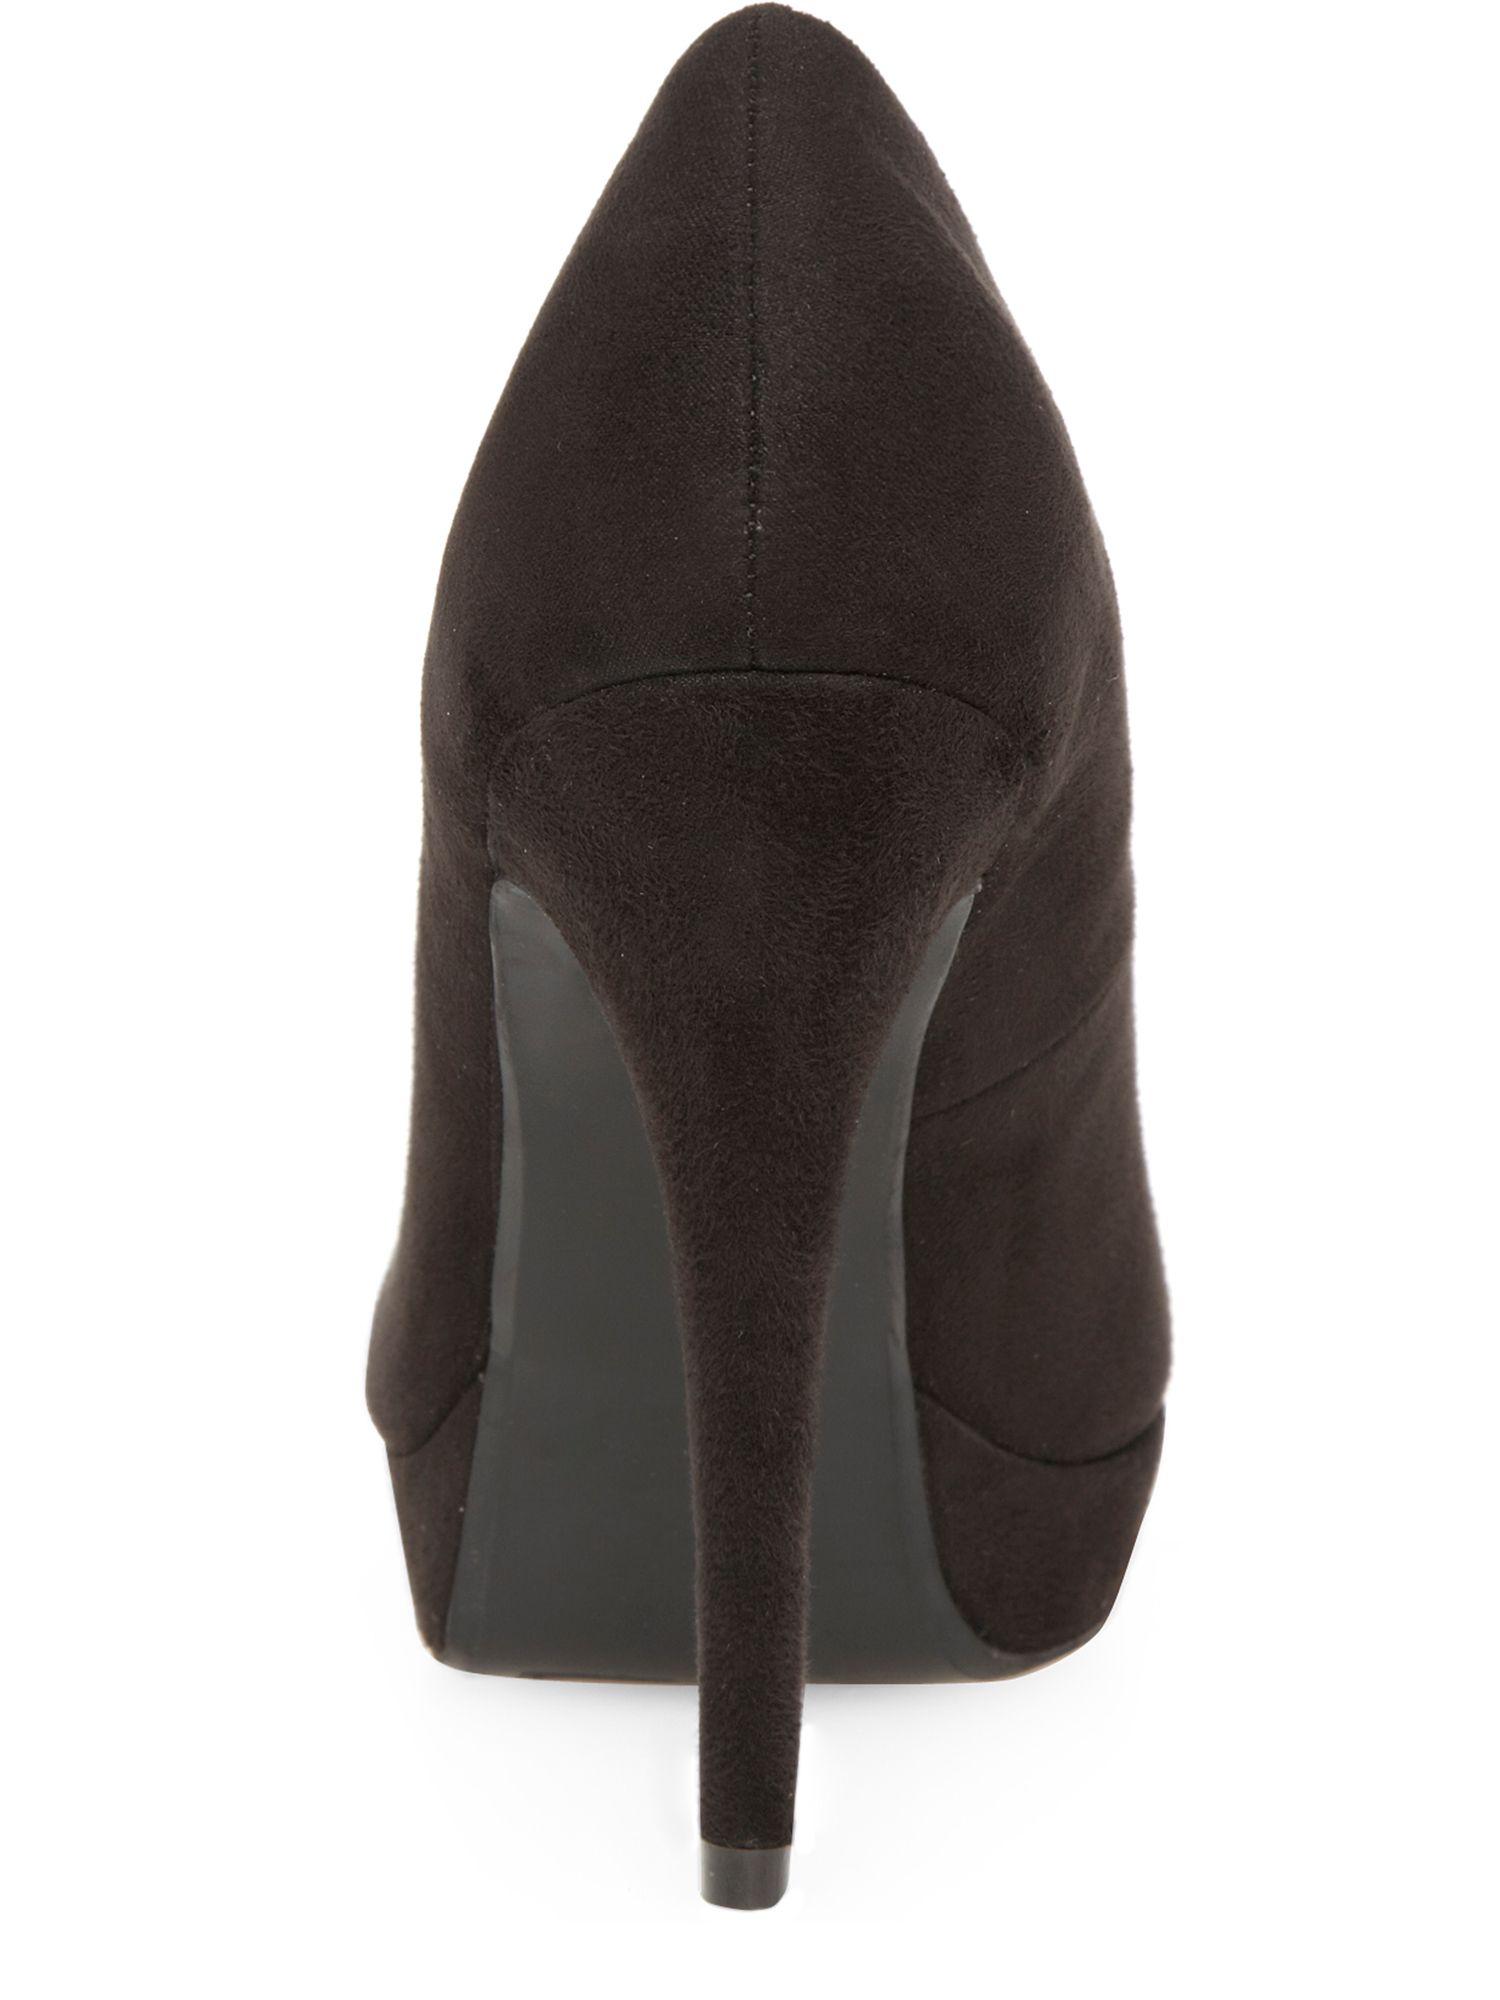 High Peep Toe Court Shoes